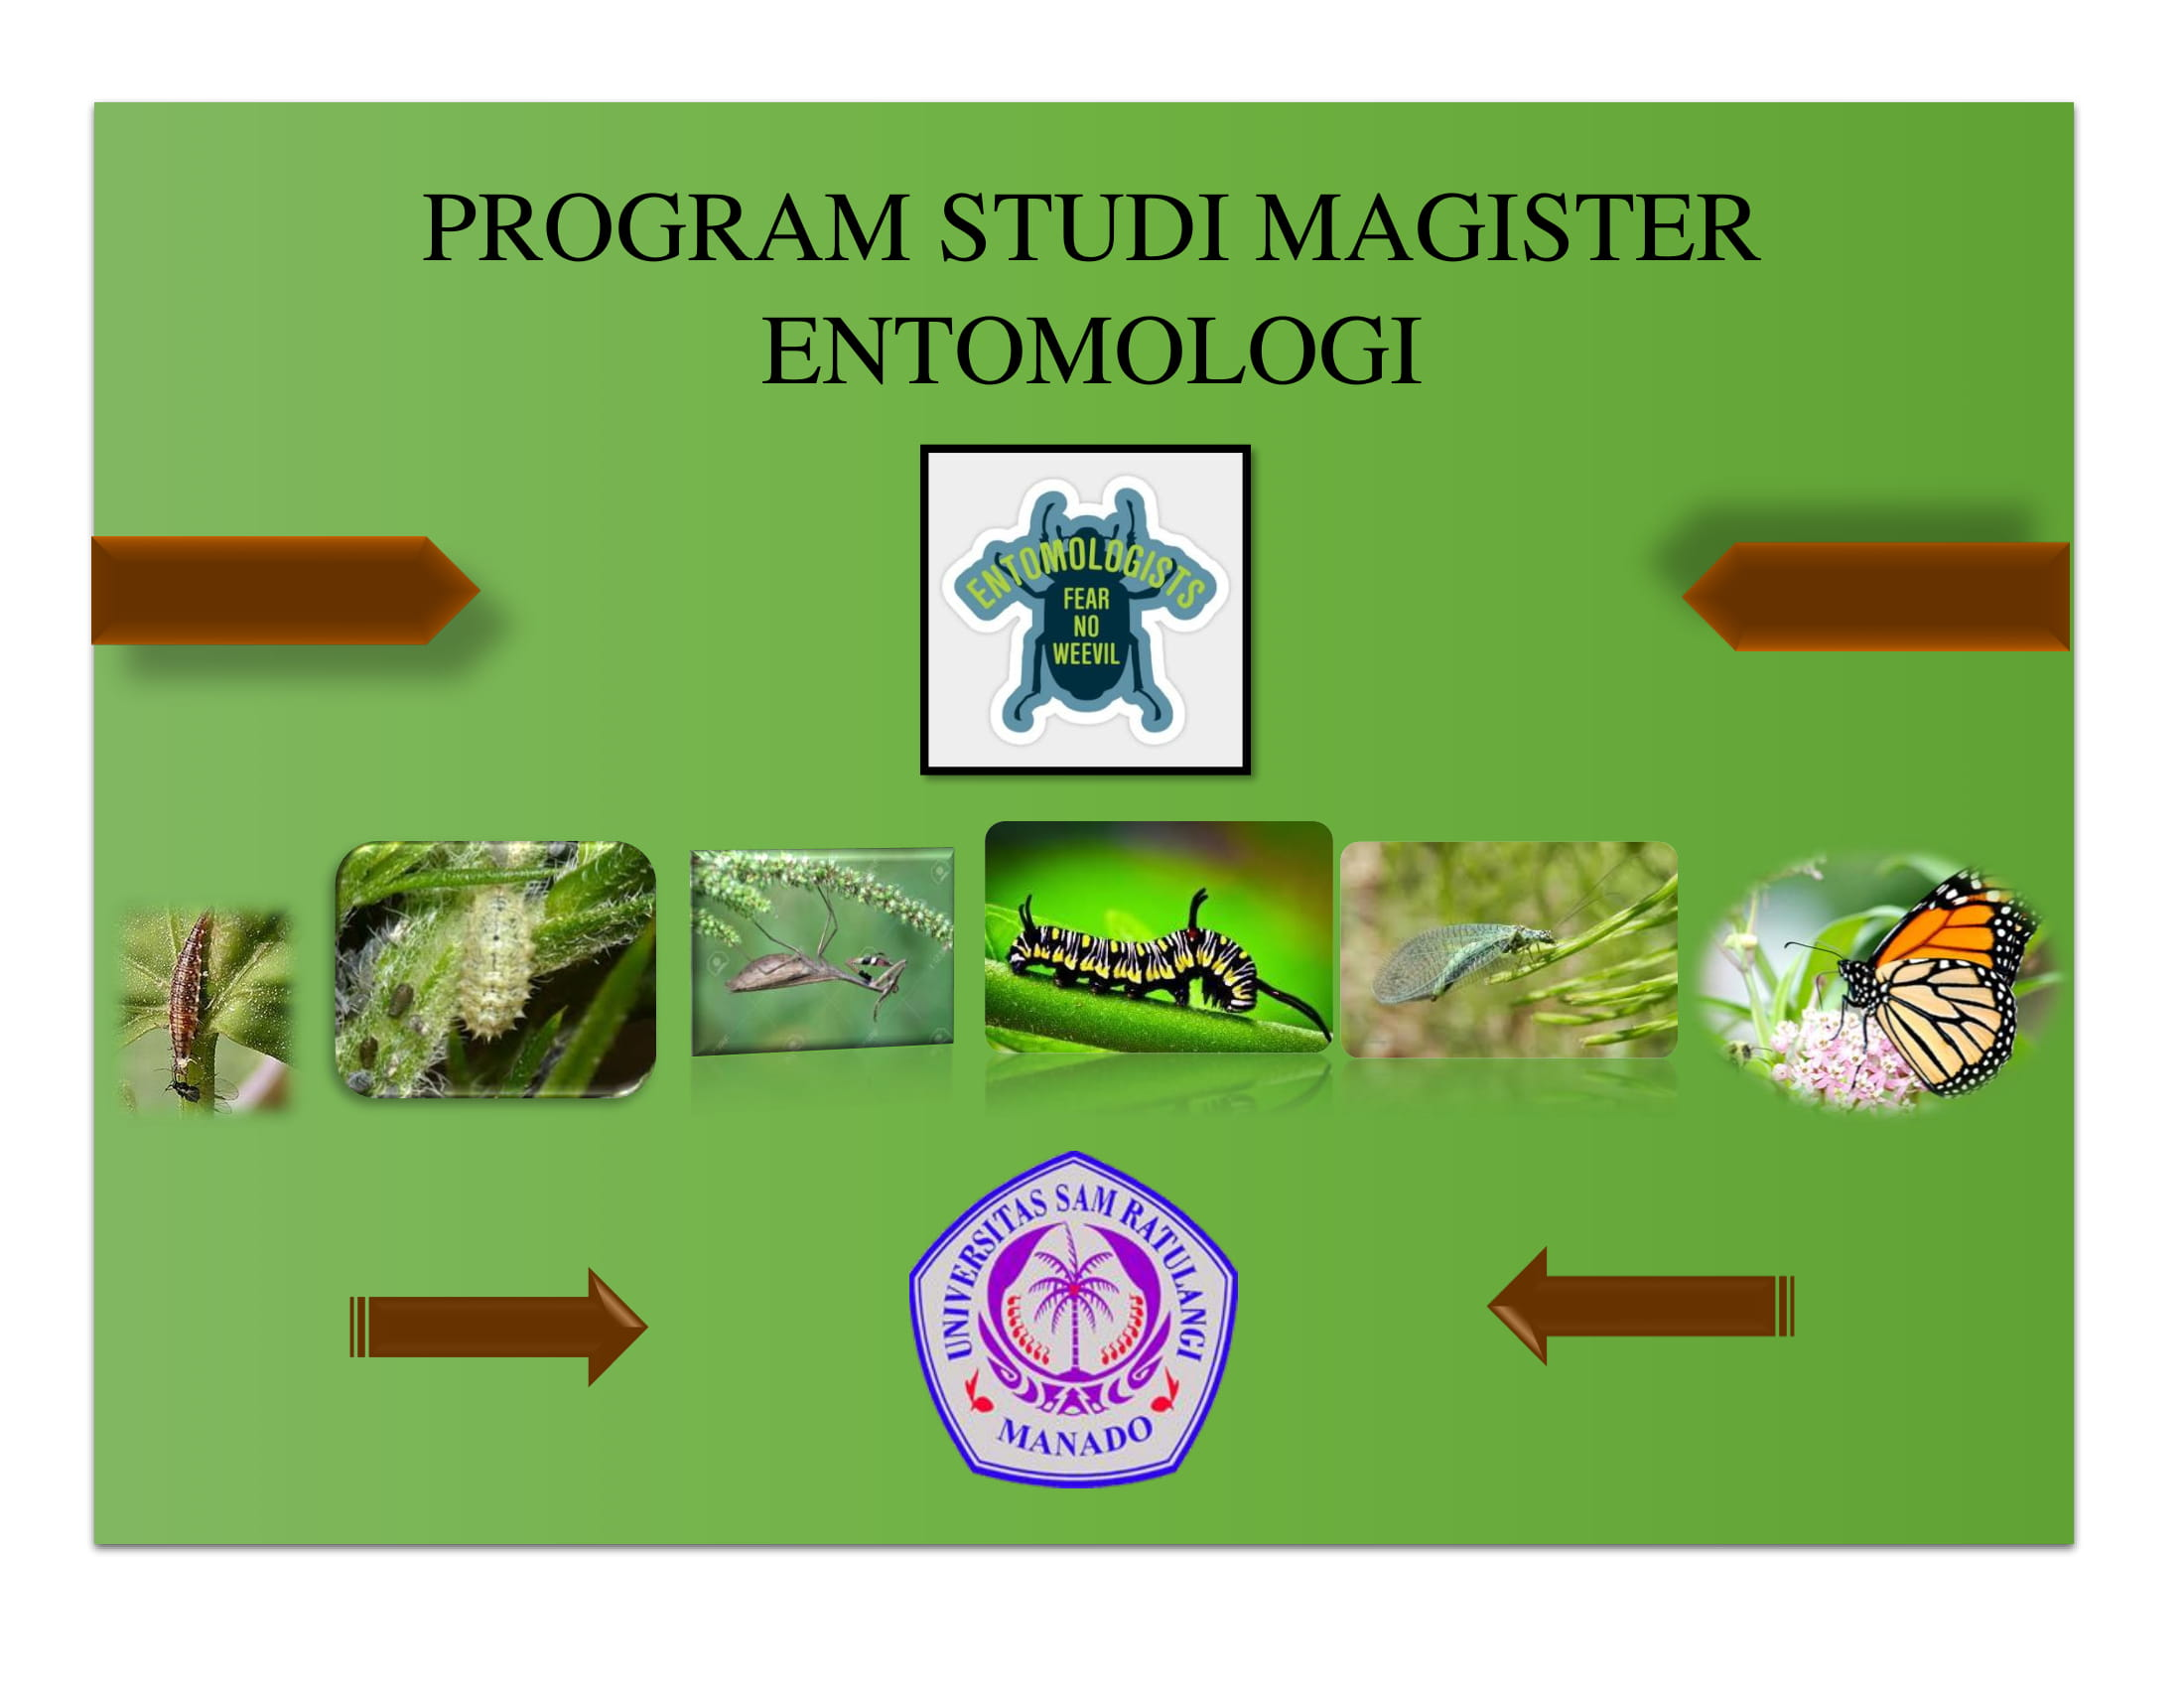 PROGRAM STUDI MAGISTER ENTOMOLOGI 1